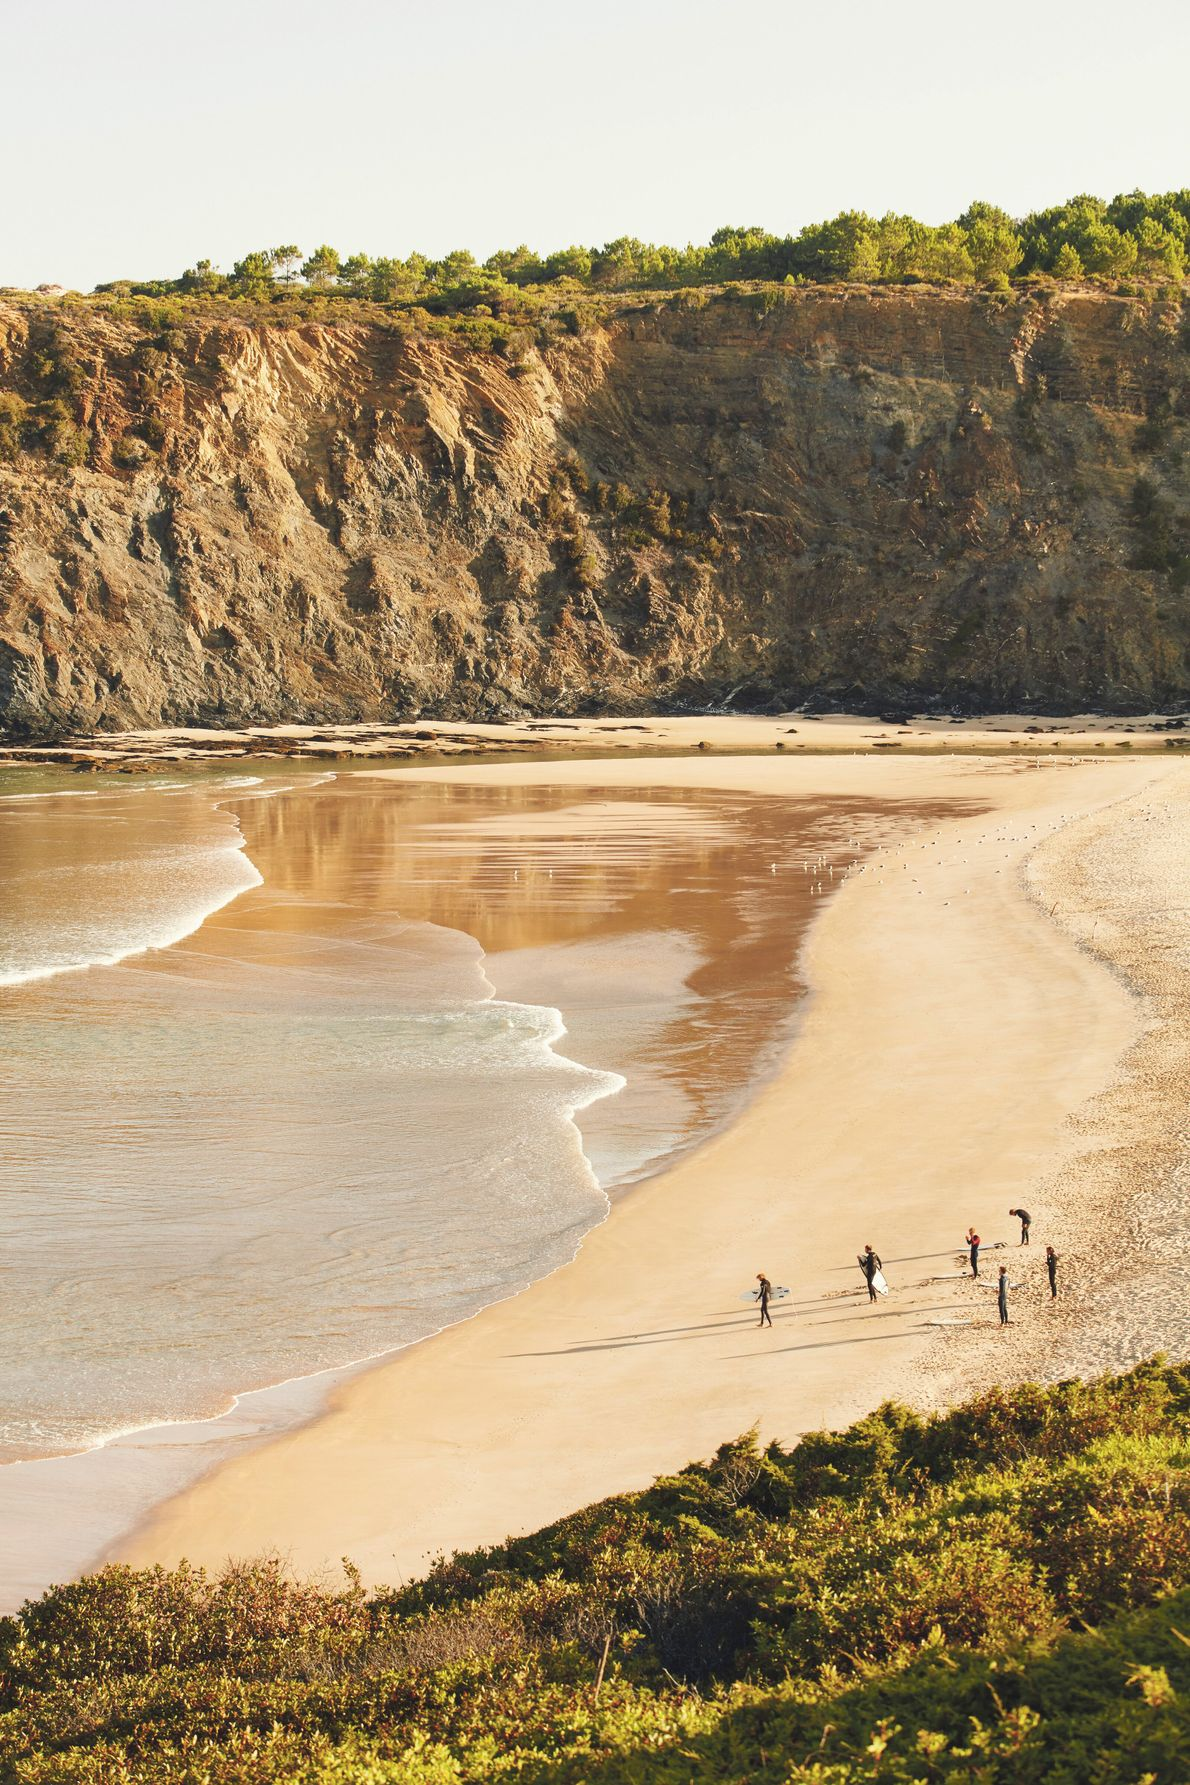 Surfers at Odeceixe Beach, Vicentine Coast Natural Park. There's no shortage of spots to grab a board ...